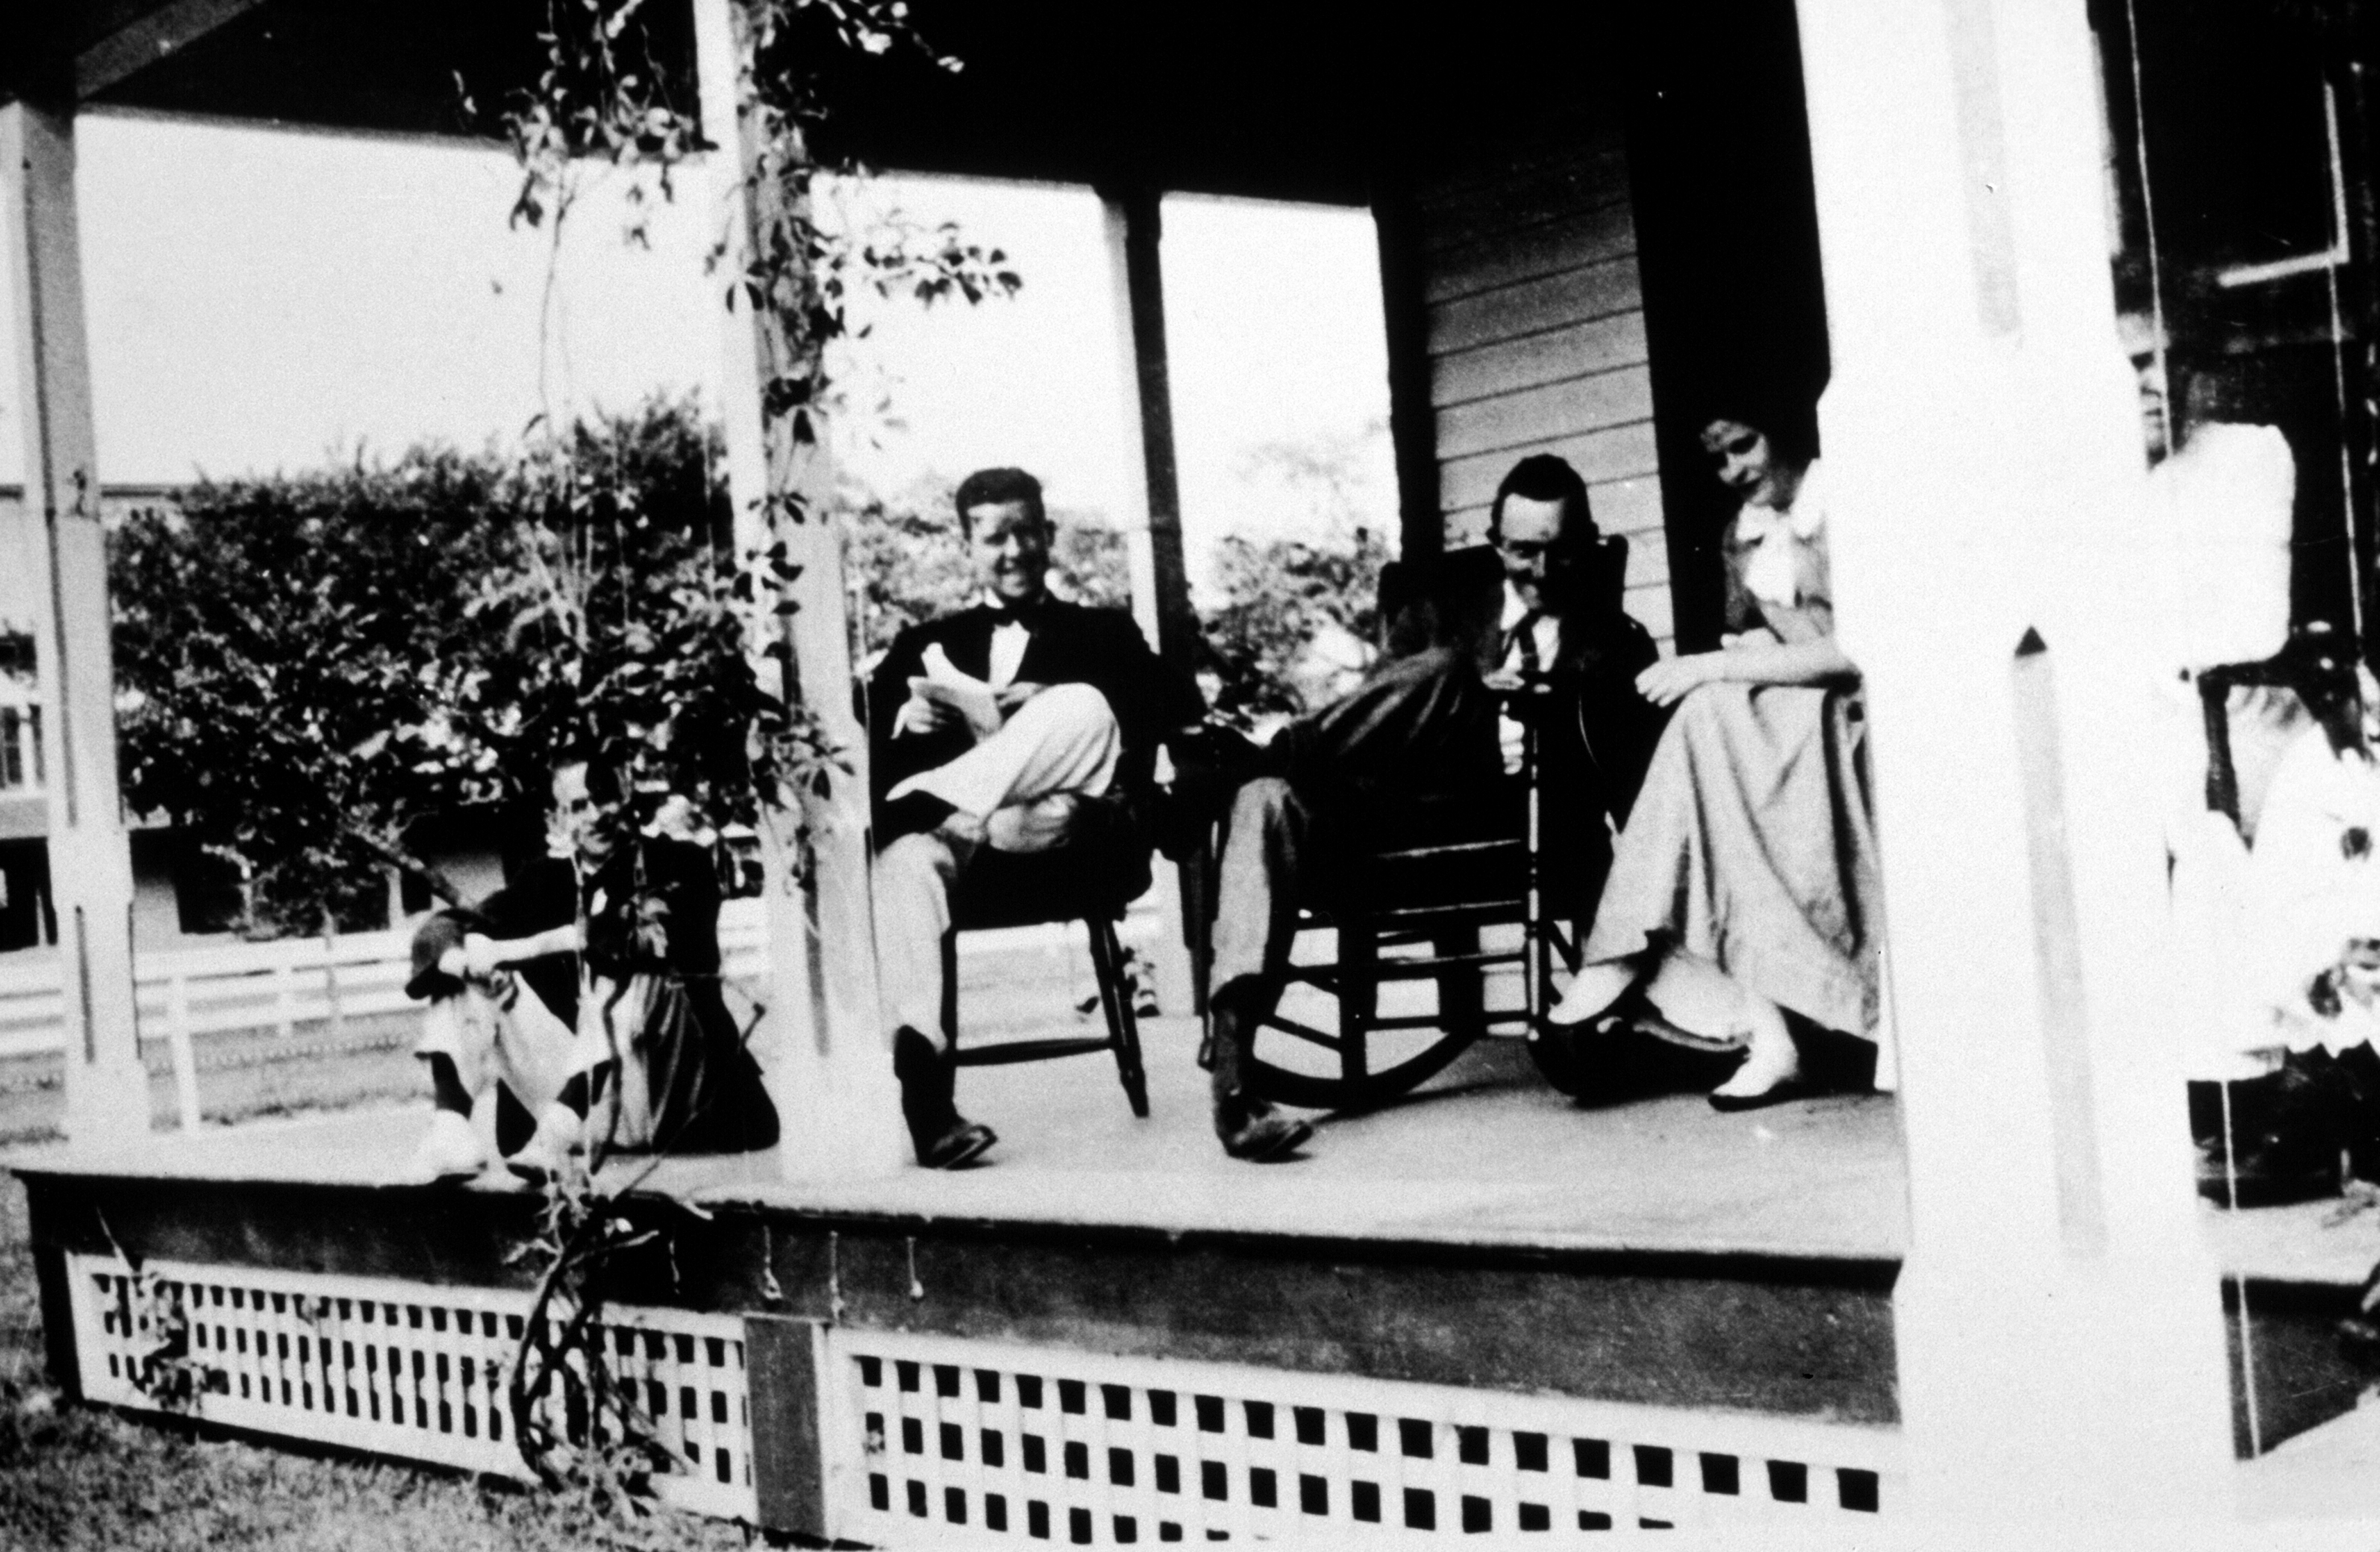 Guests on the porch of the Quogue House porch